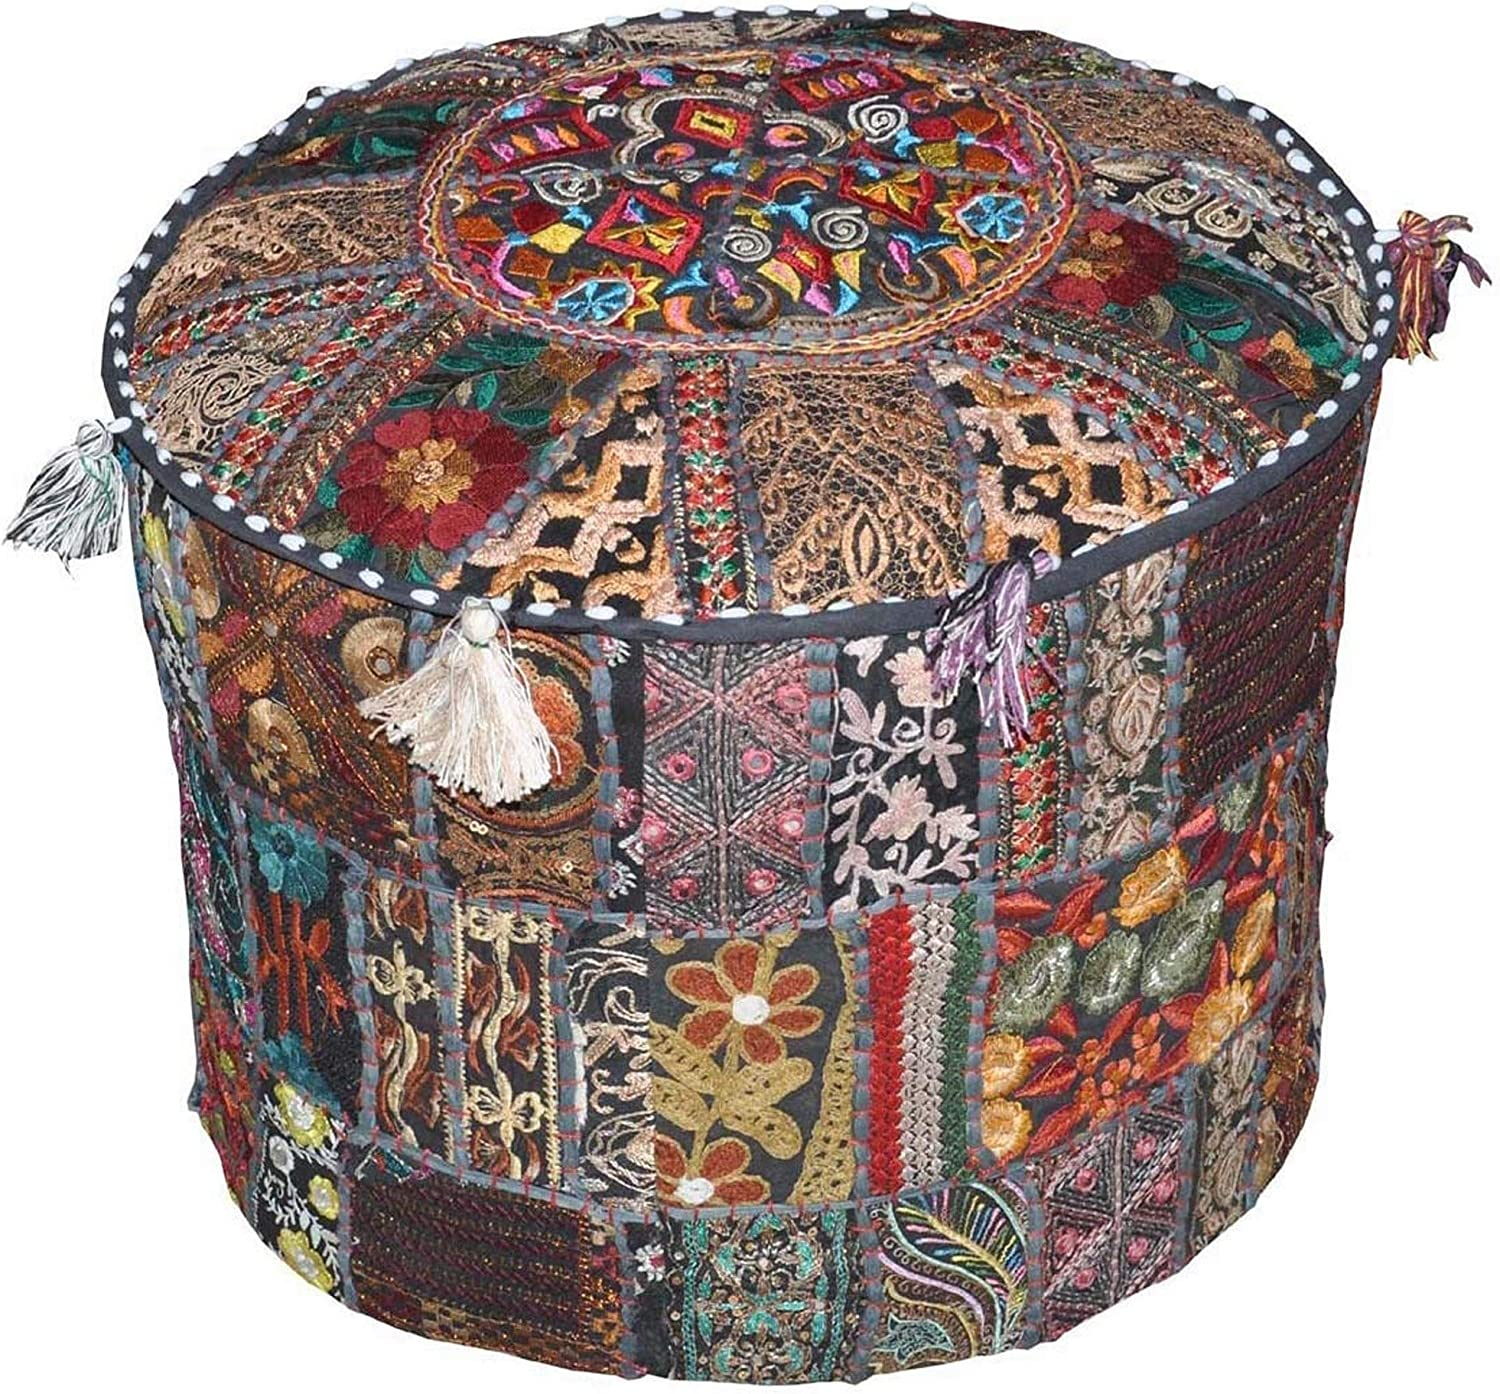 The Art Box Indian Pouf San Diego Mall Ethnic Footstool Regular dealer Cover Embroidered